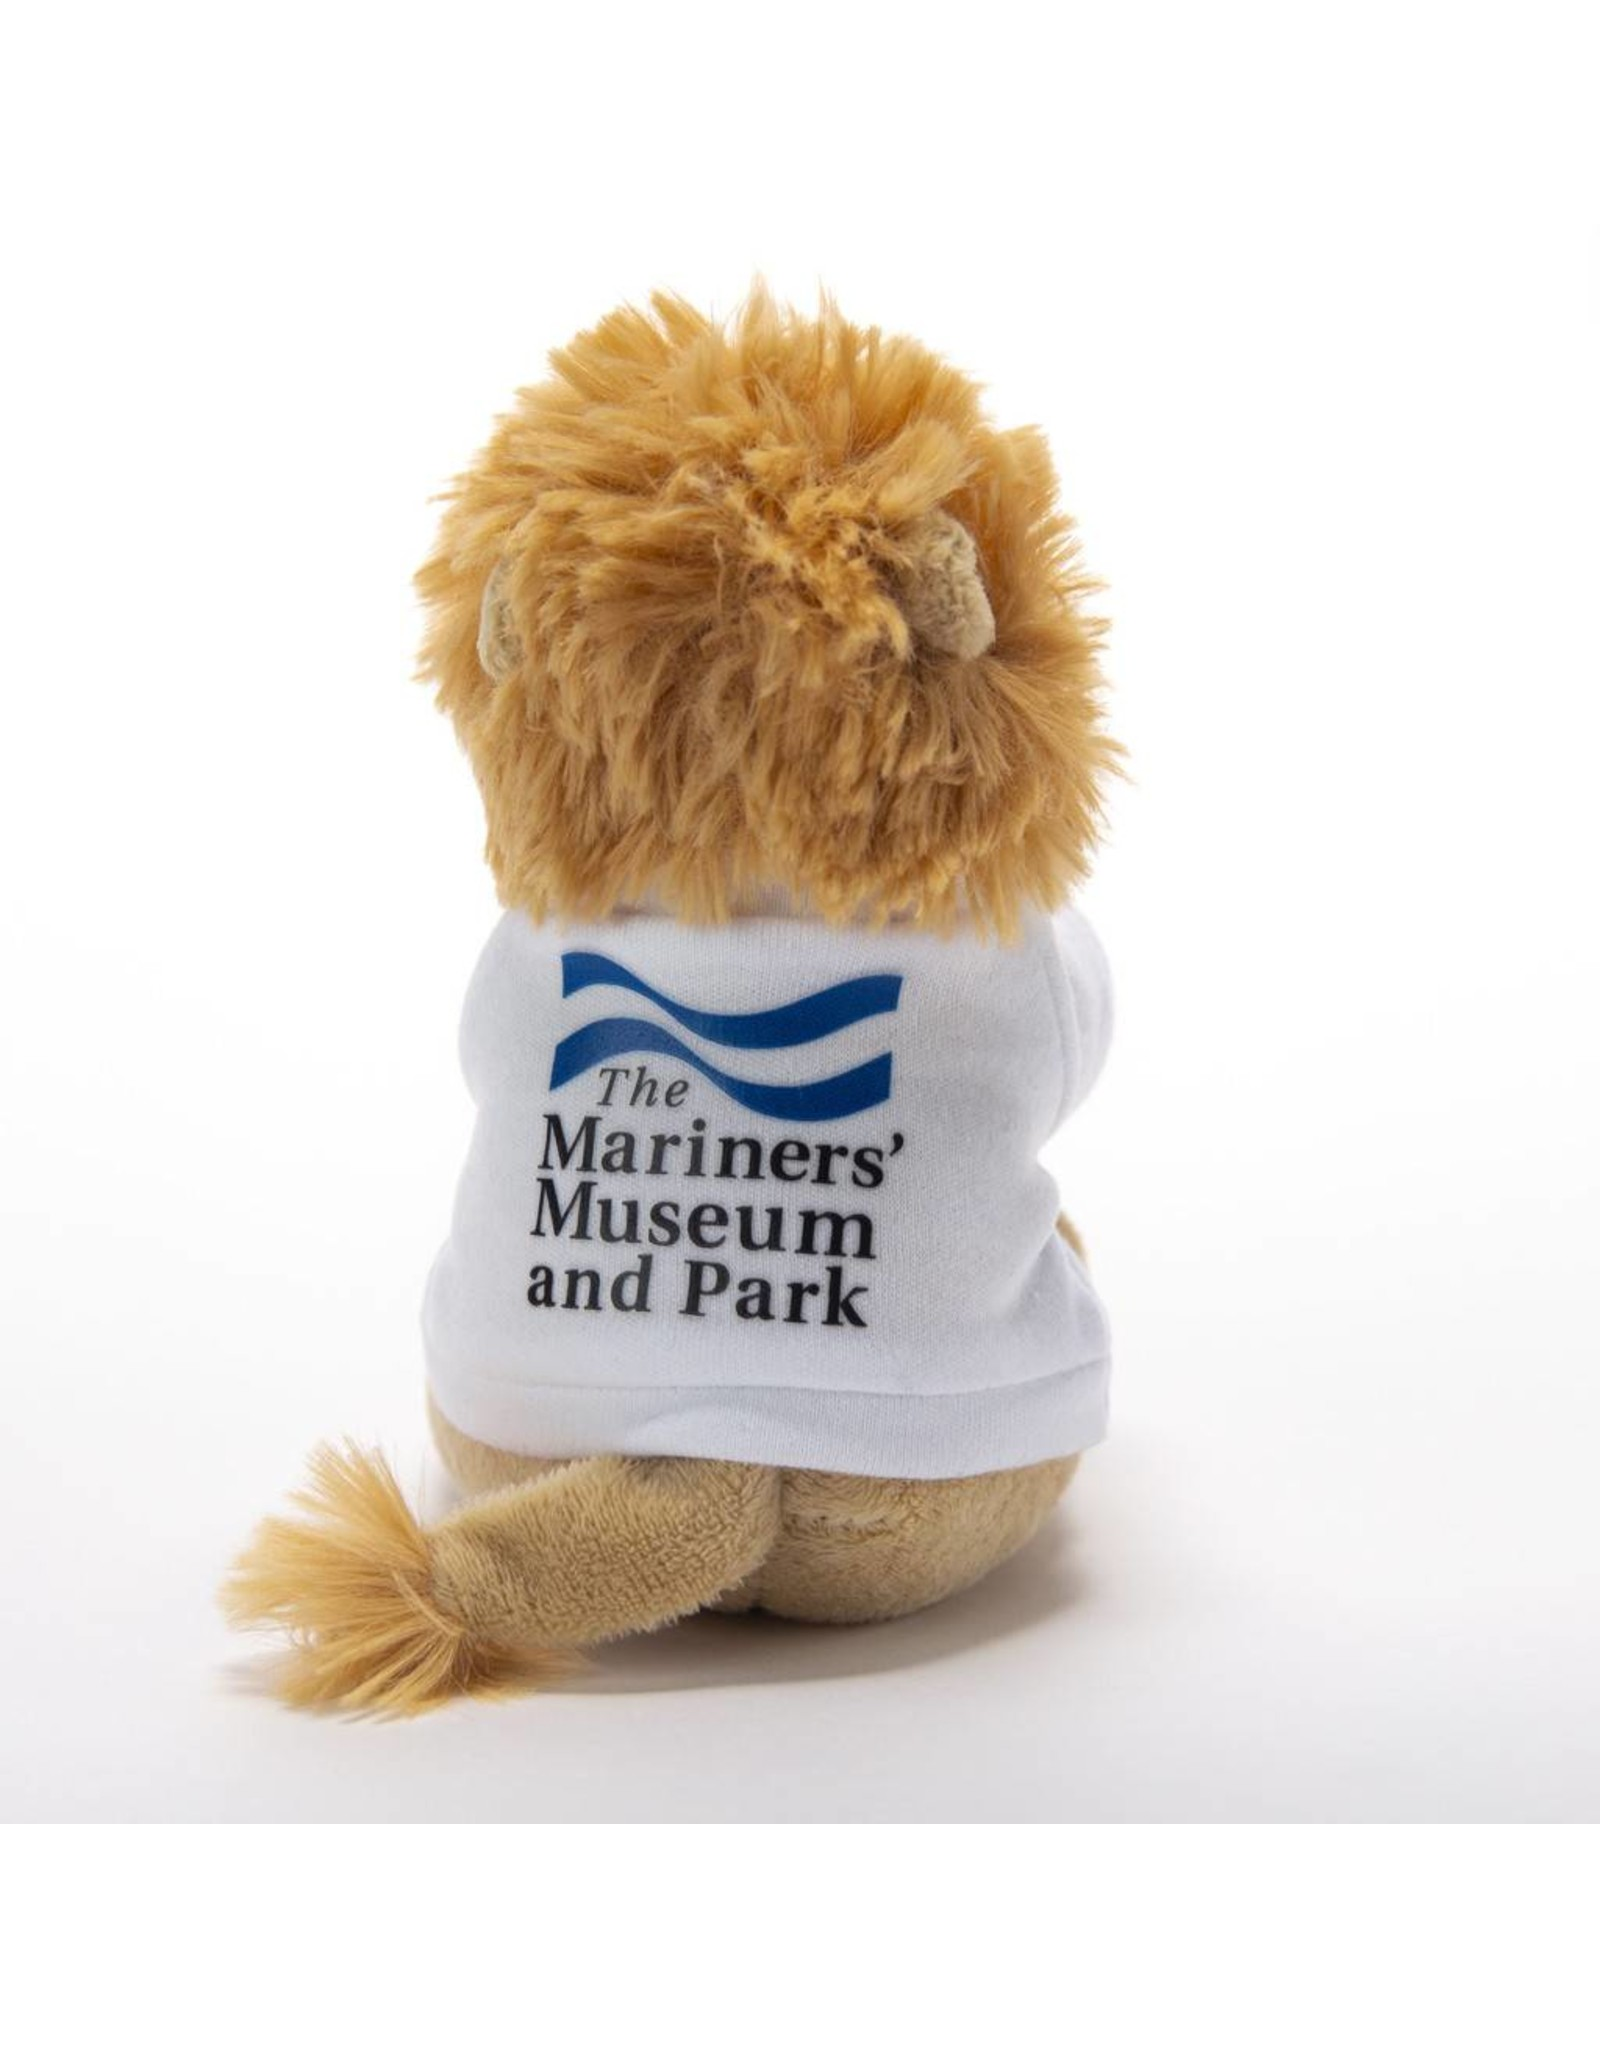 The Mariners' Museum and Park Stuffed Lion